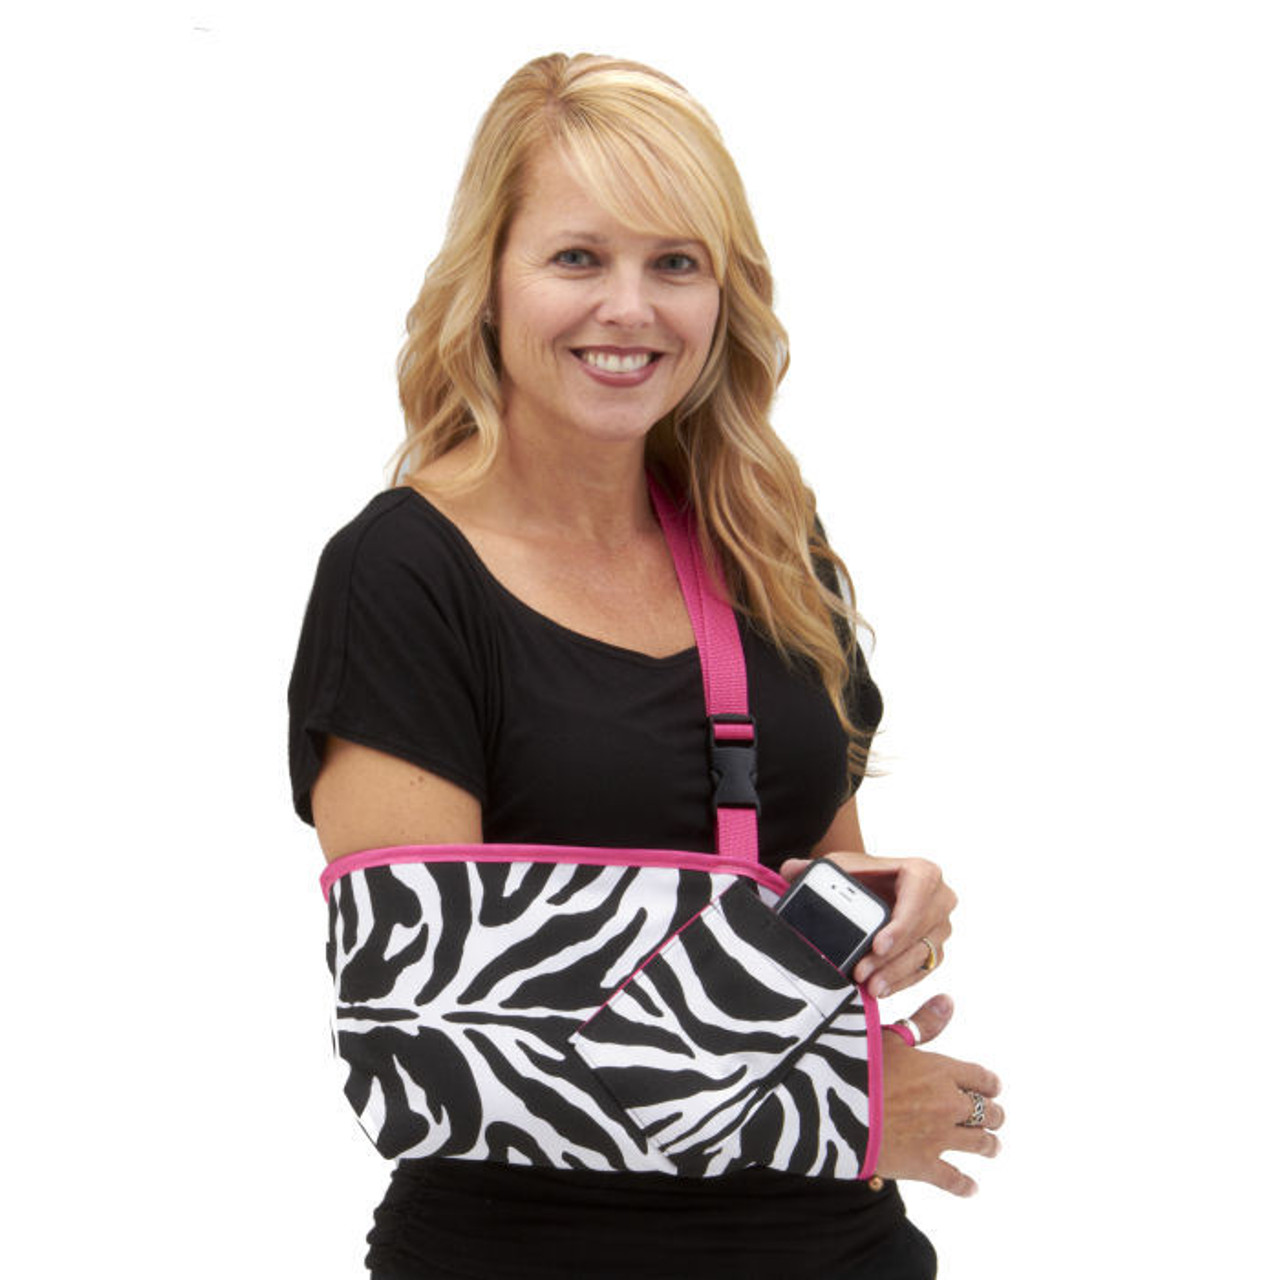 a3bc8fa41b00 Zebra in very popular Berry Pink Trim and Cell Phone pocket options.